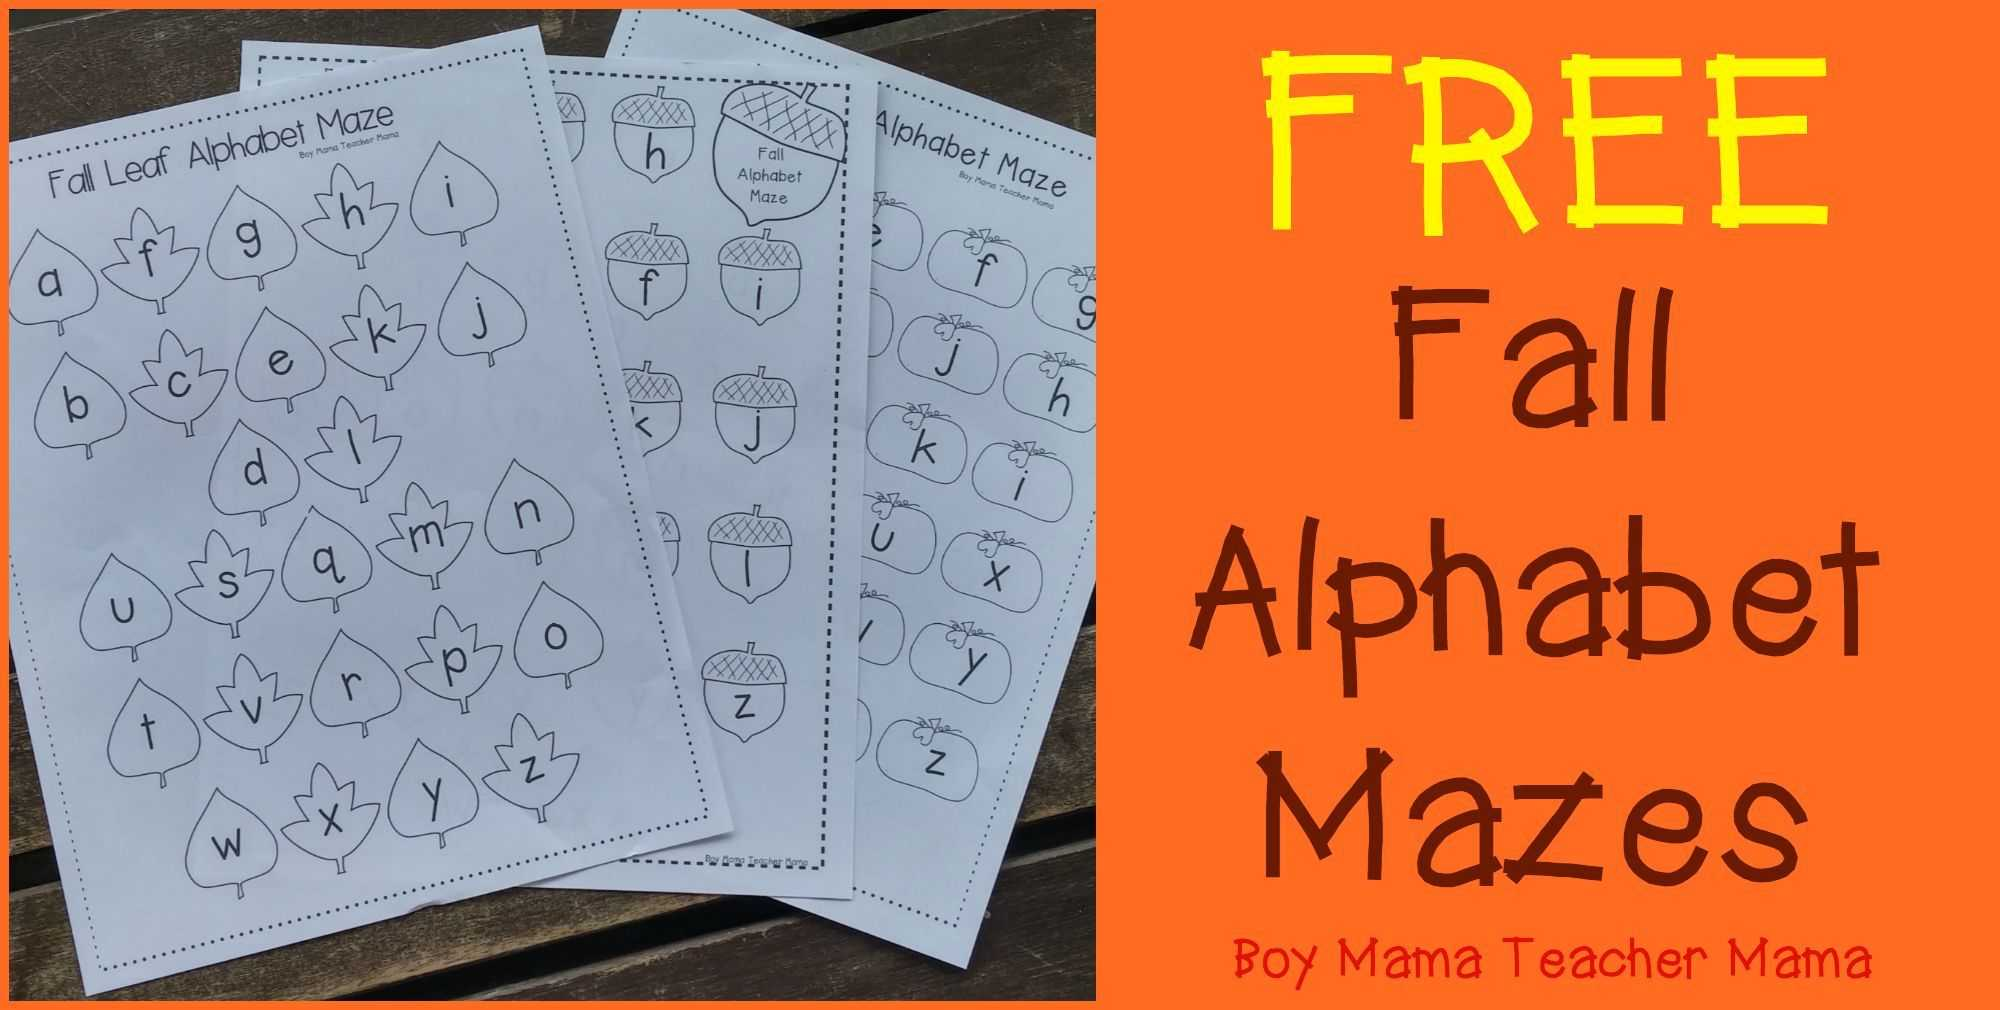 Fall Worksheets for Kindergarten or Boy Mama Teacher Mama Free Fall Alphabet Mazes